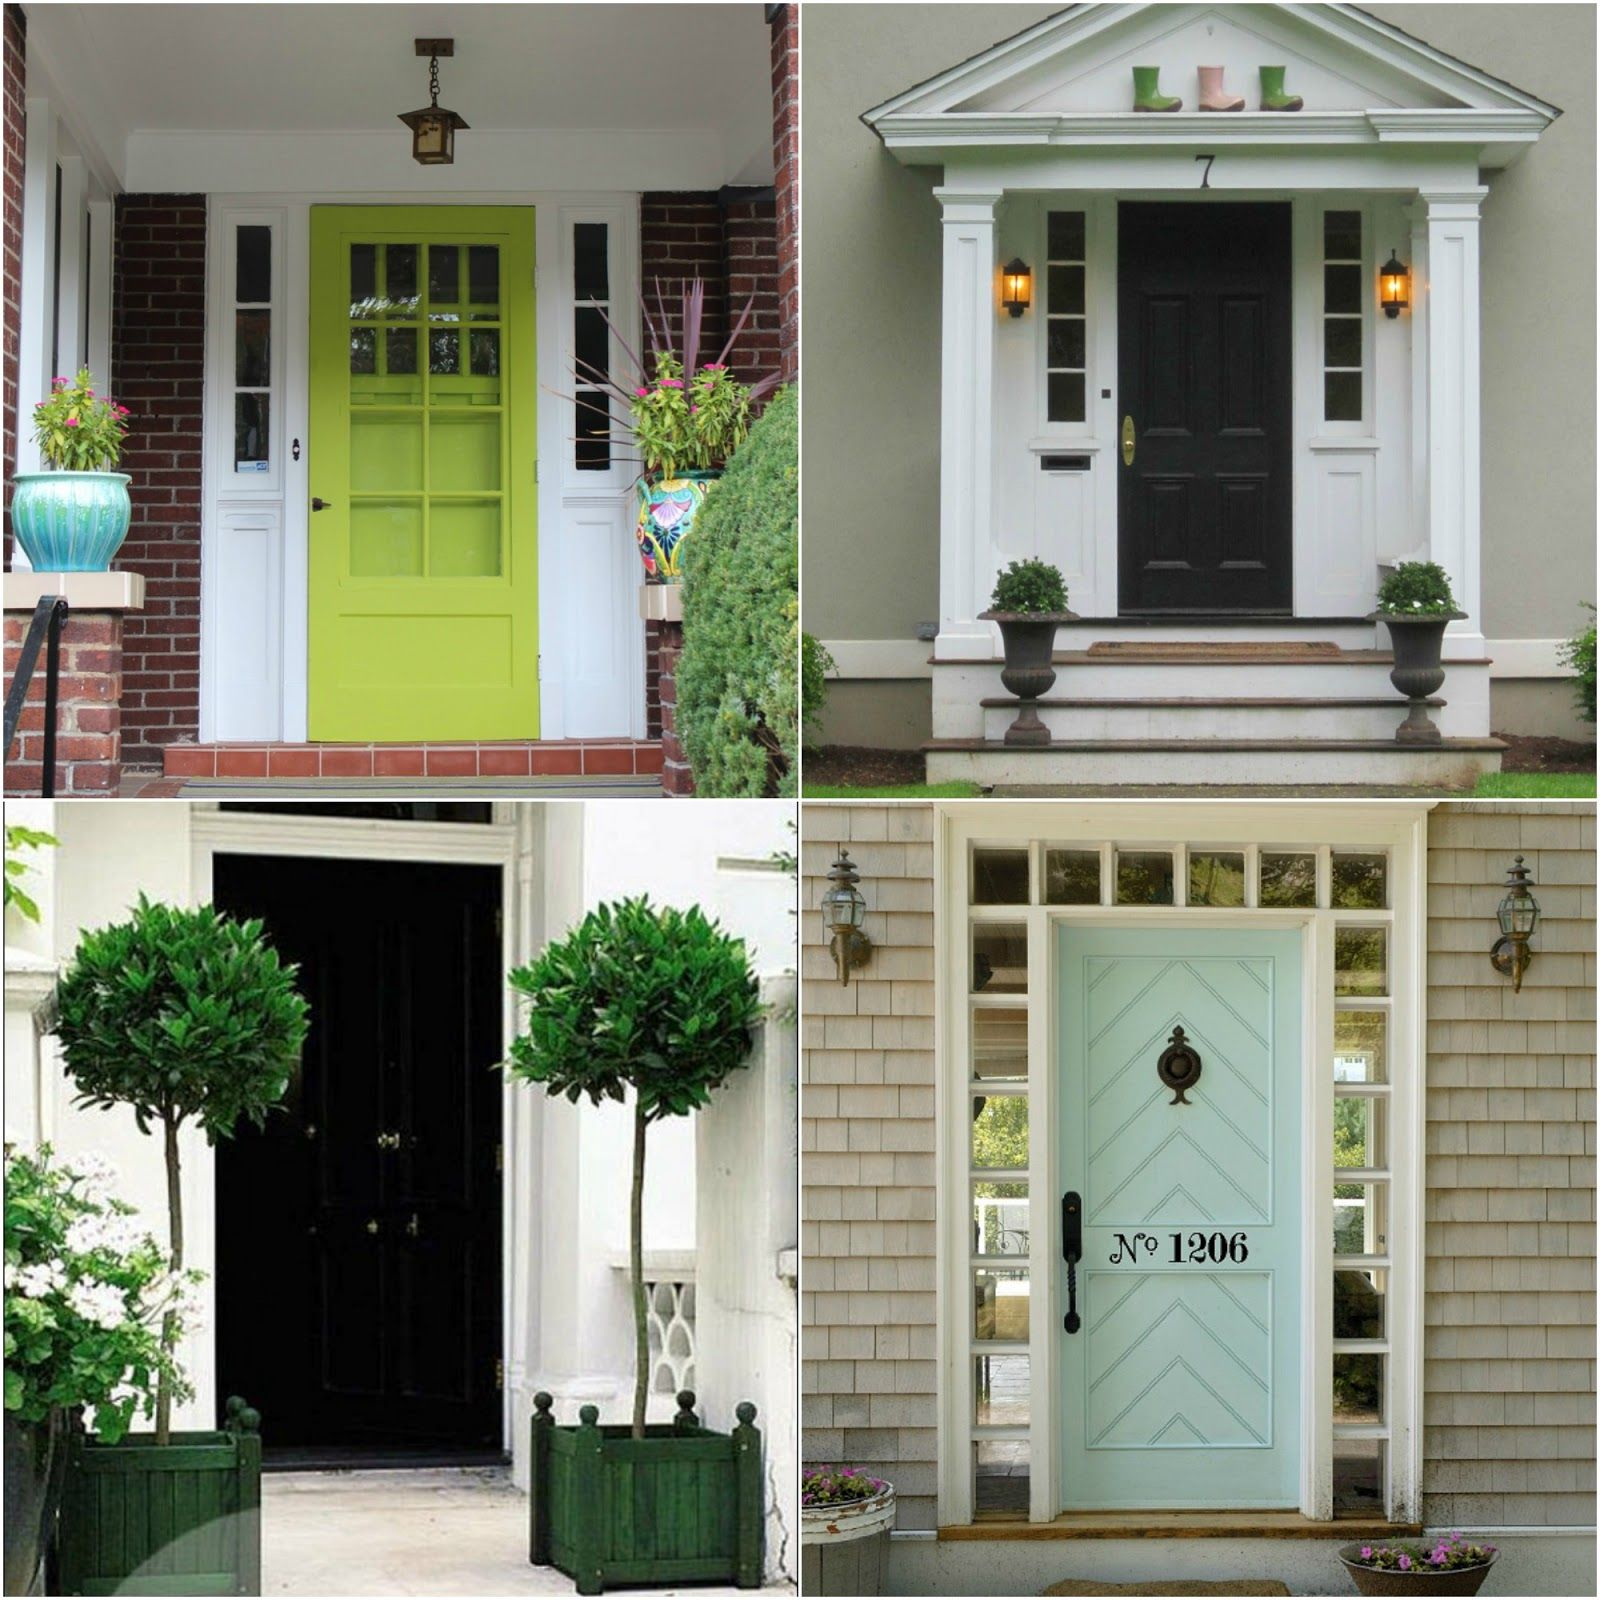 Doors front door ideas for brick homes front door ideas for Exterior front door ideas